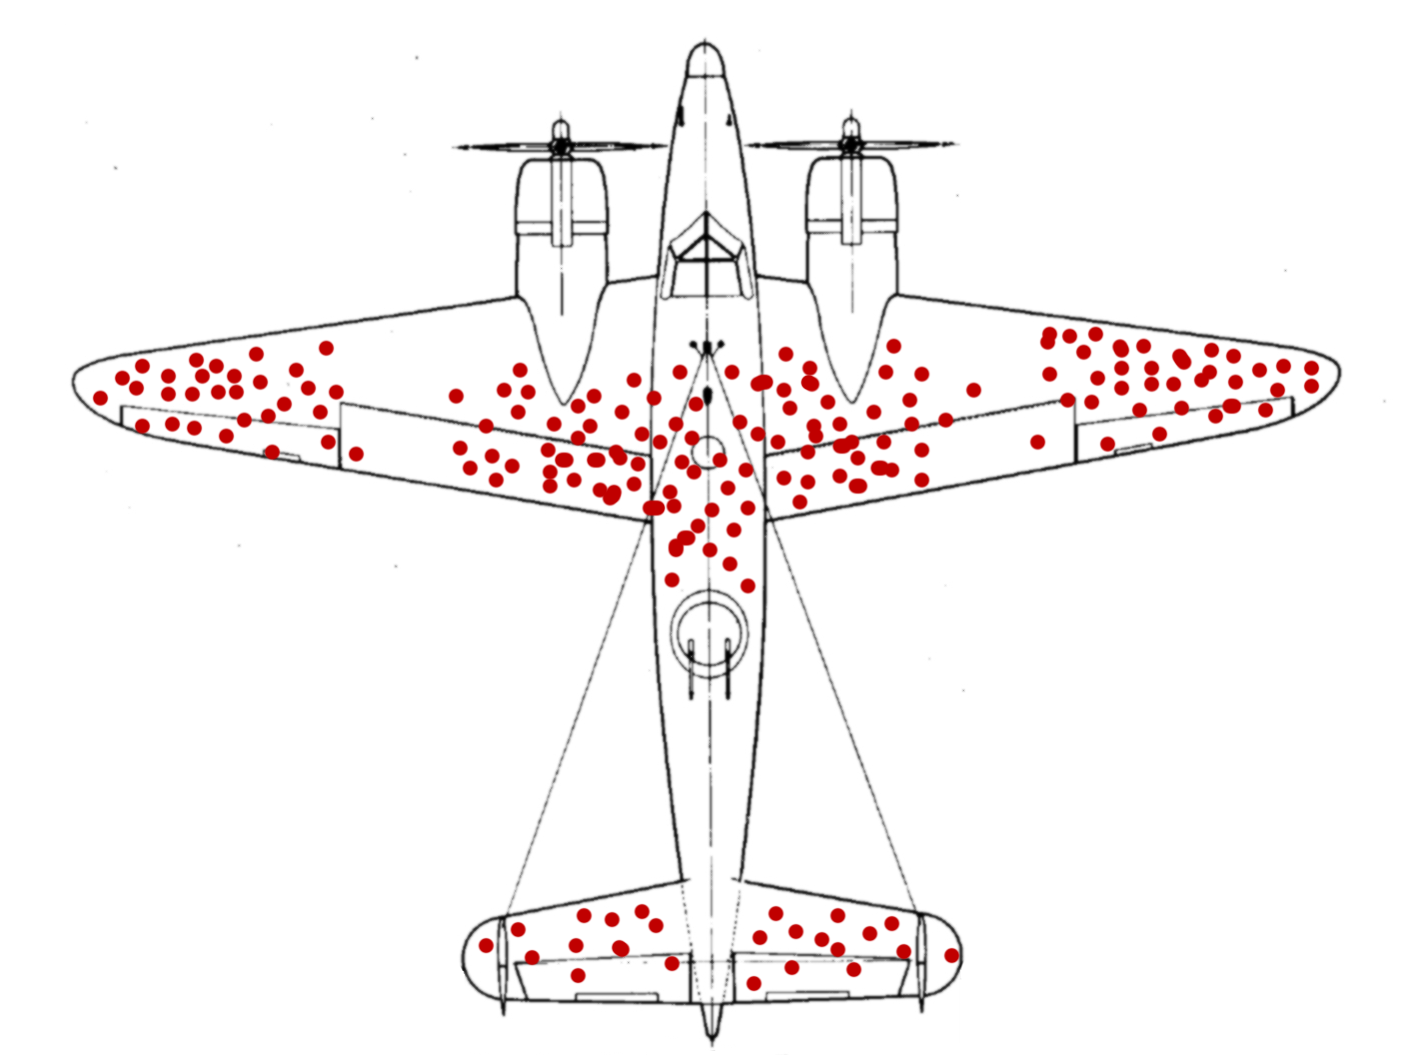 Survivorship-bias